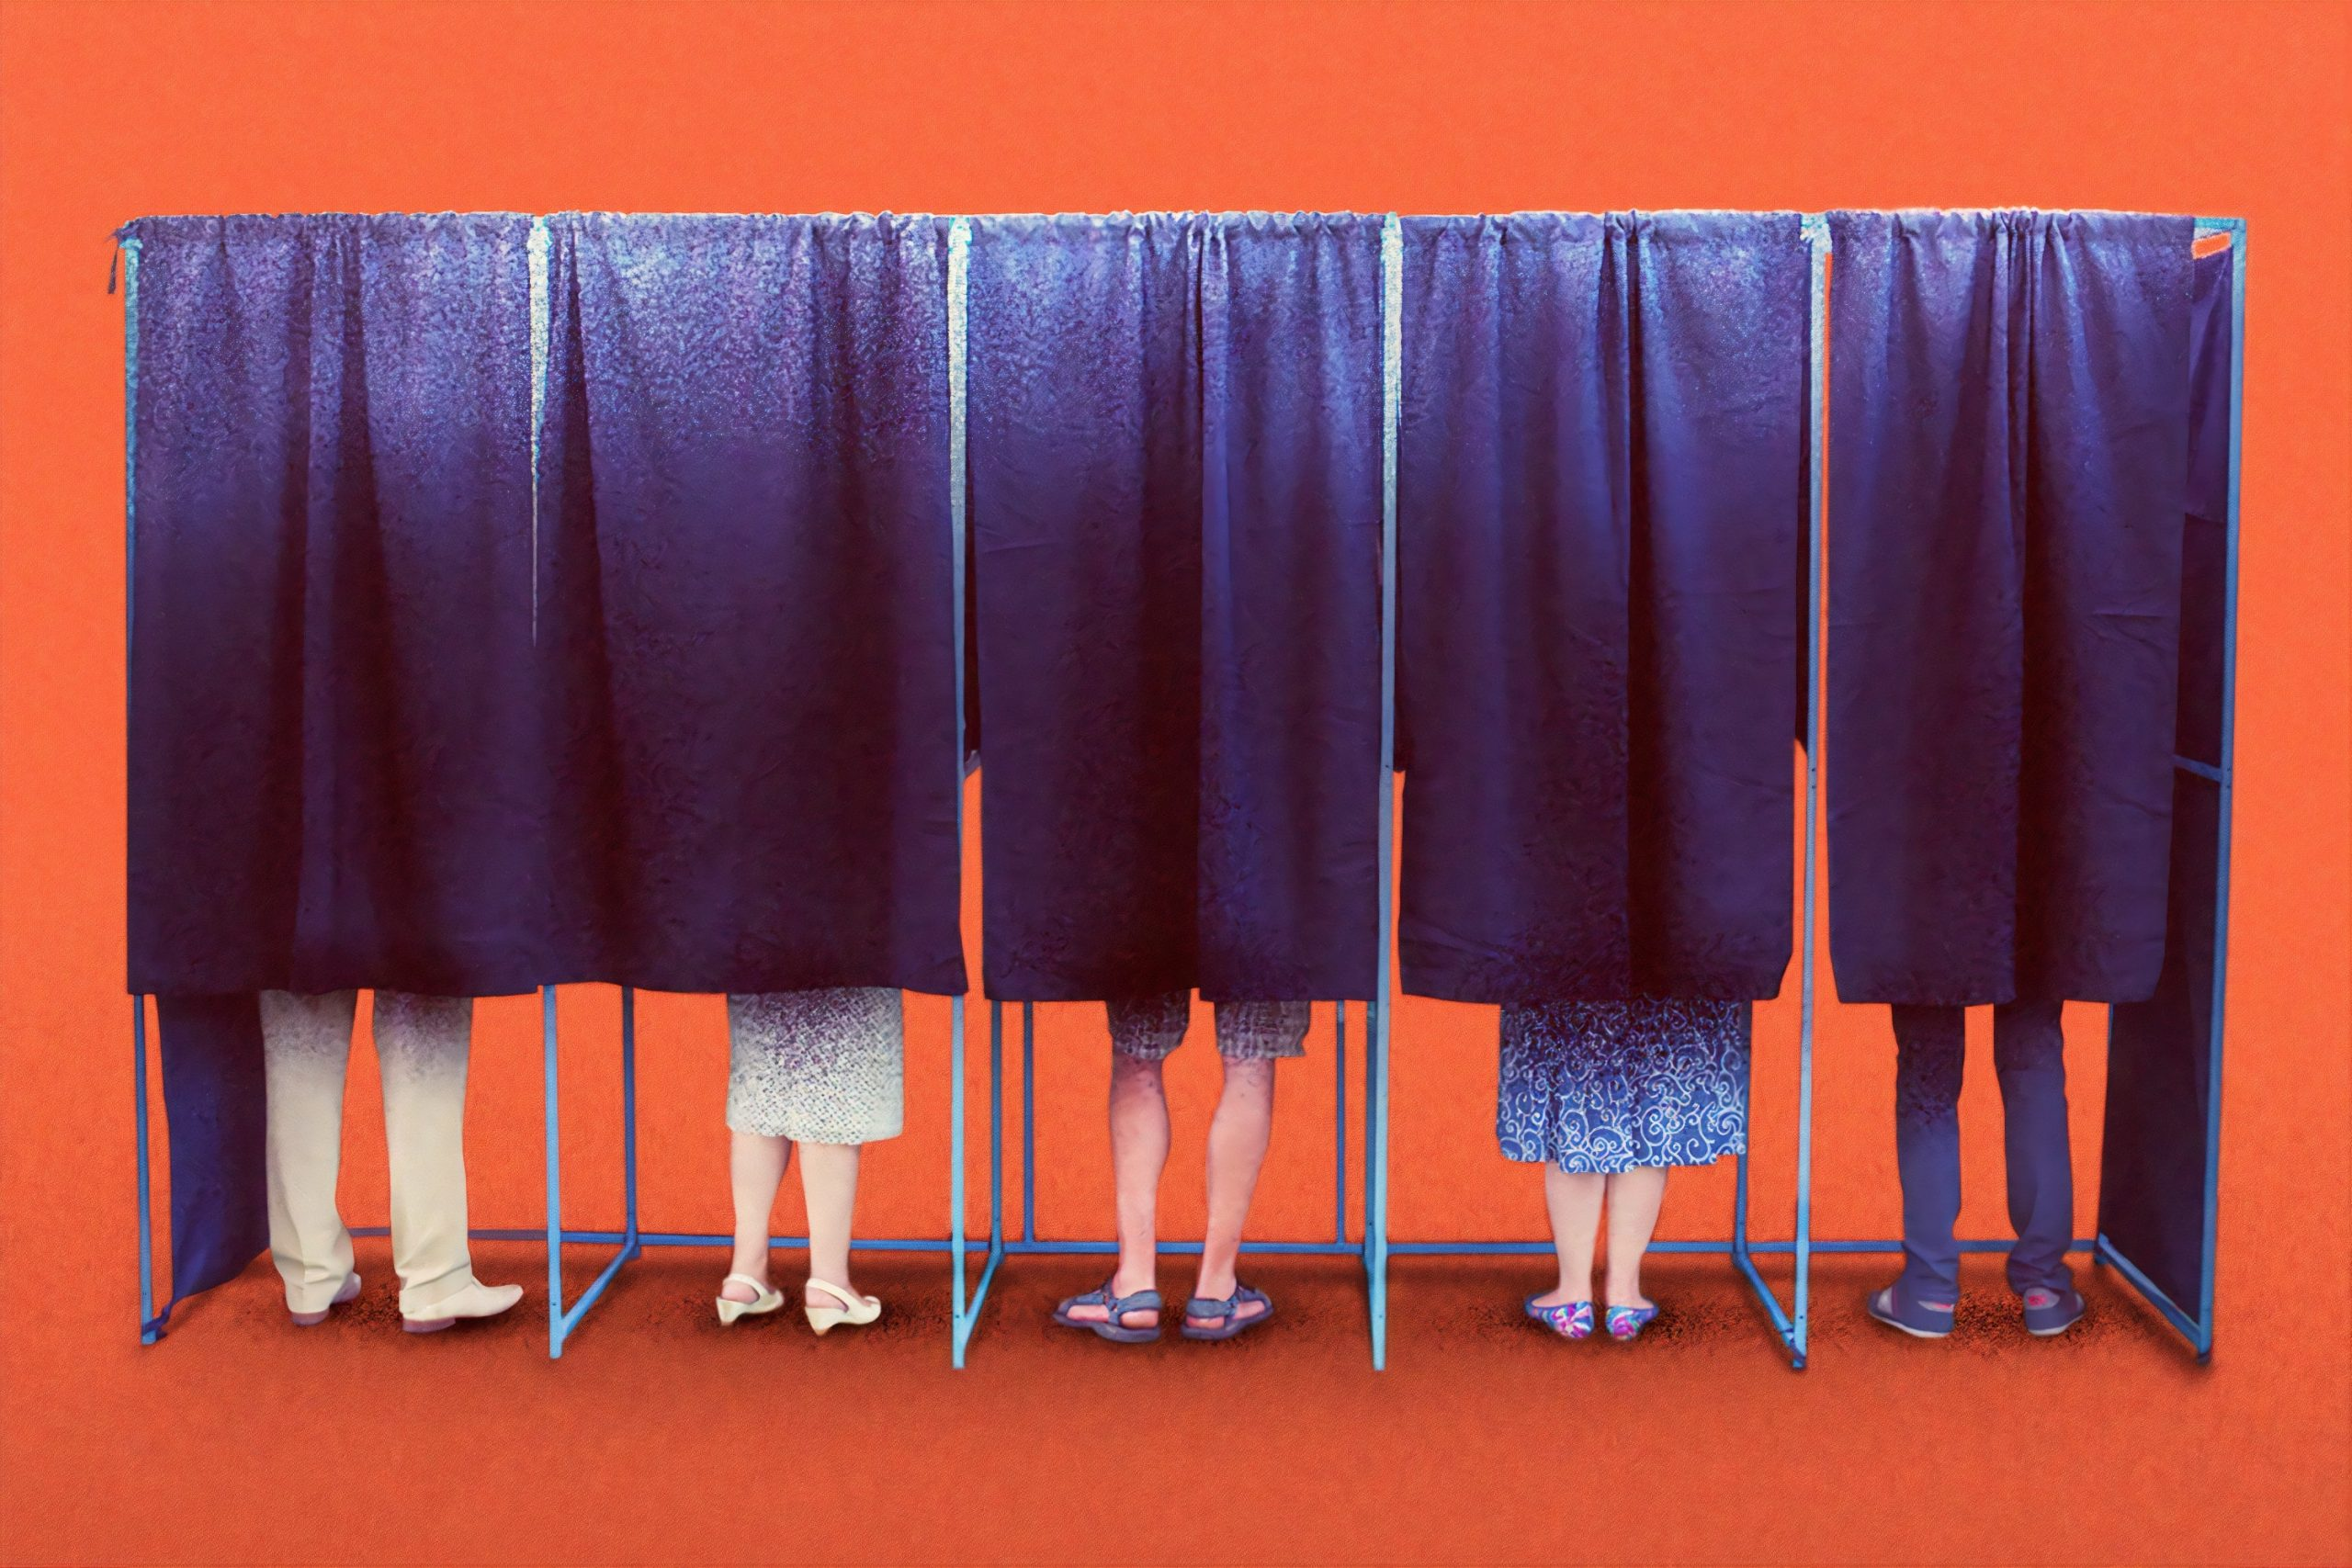 People behind voting booth curtains.